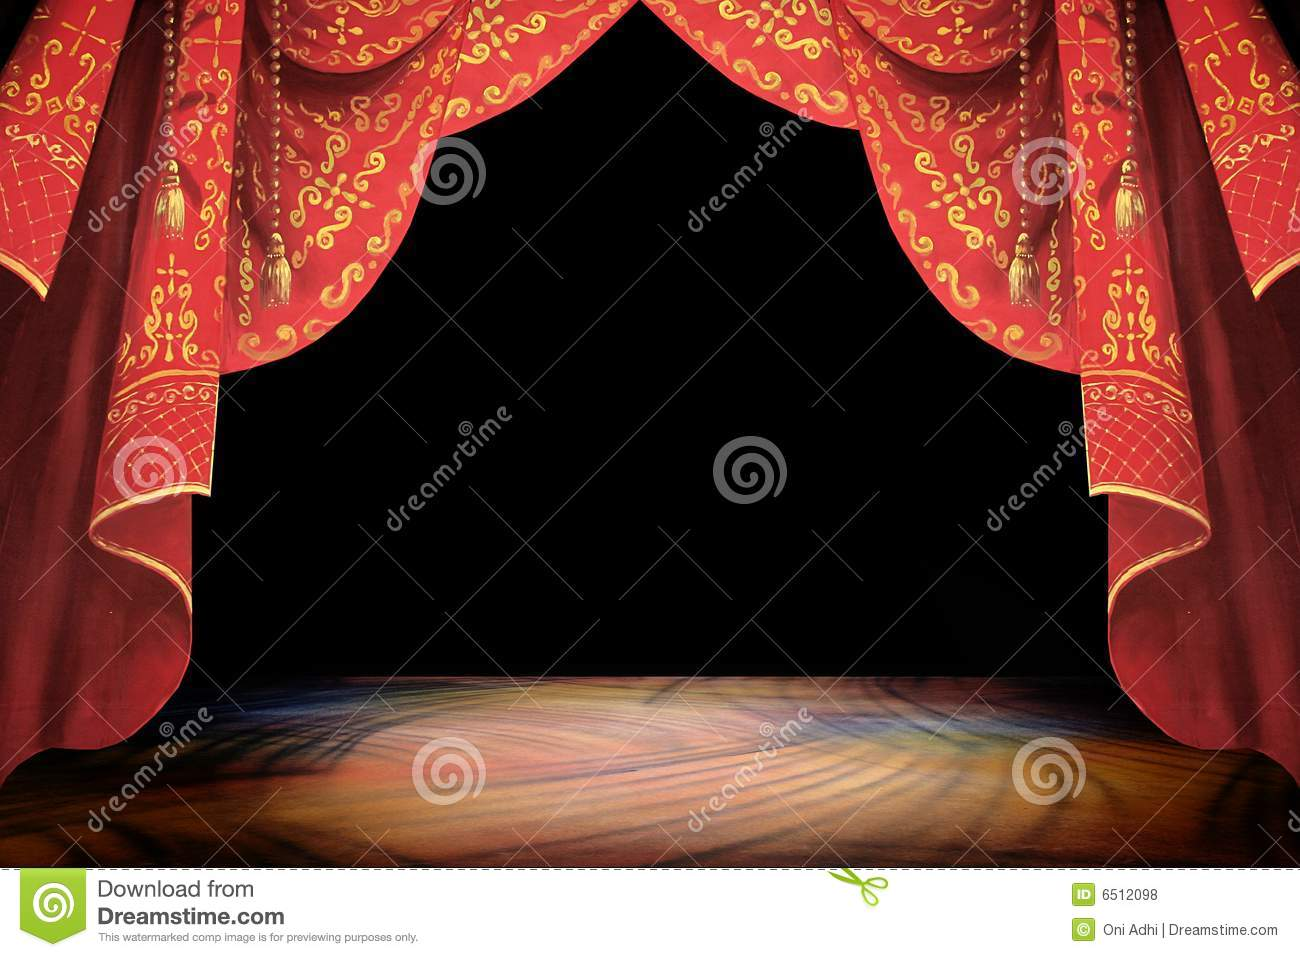 Open theater drapes or stage curtains royalty free stock image image - Royalty Free Stock Photo Background Curtain Illustration Stage Cloth Drama Texture Open